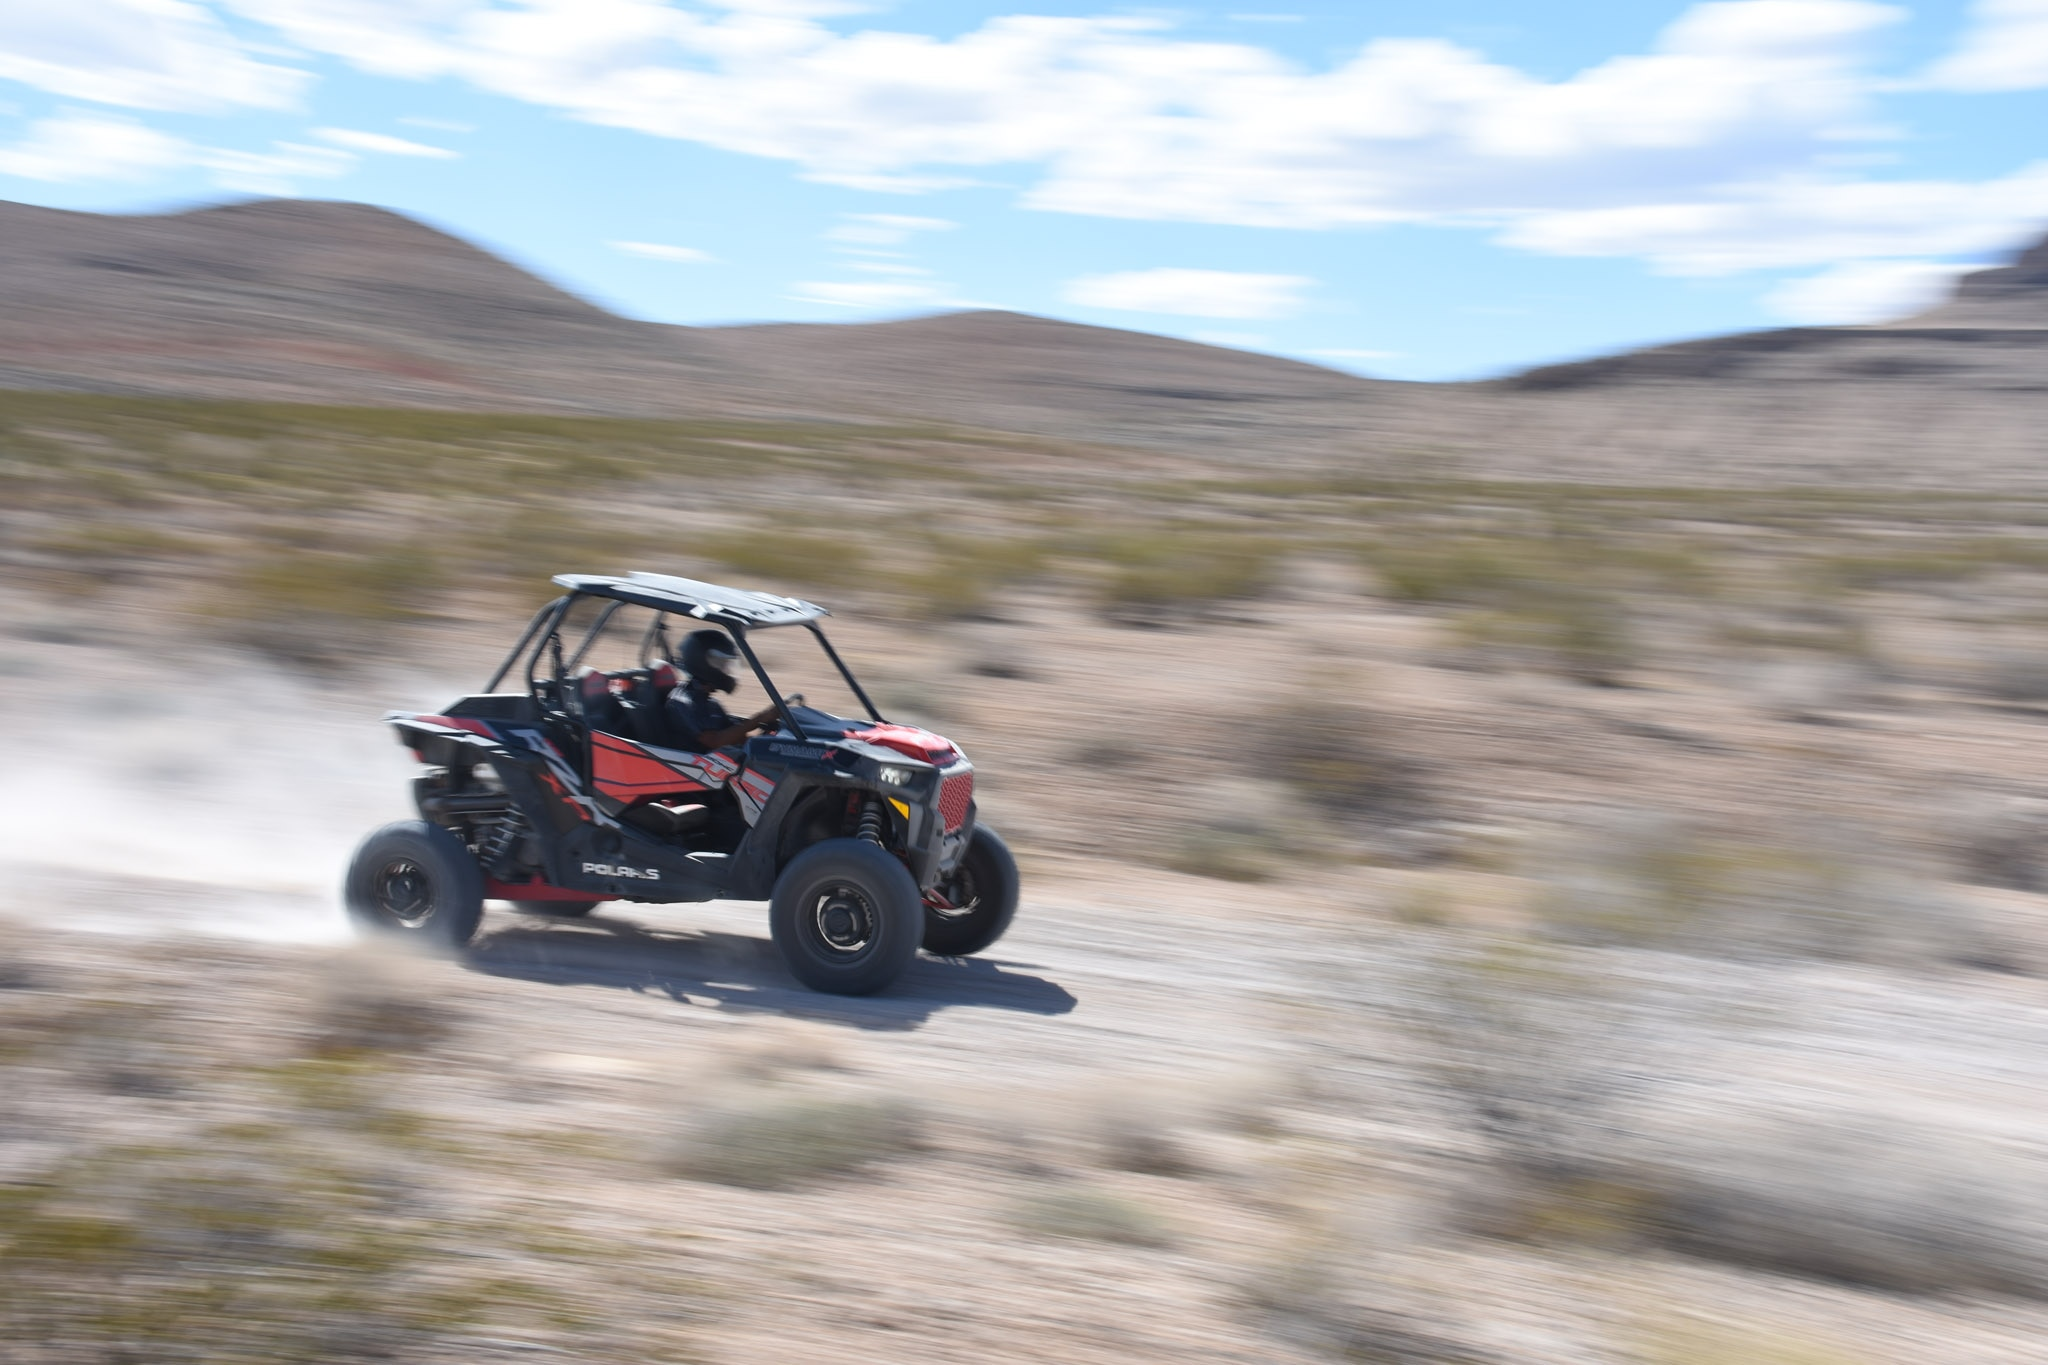 Crossing (Part of) the Mojave Desert at 76 MPH in the Polaris RZR